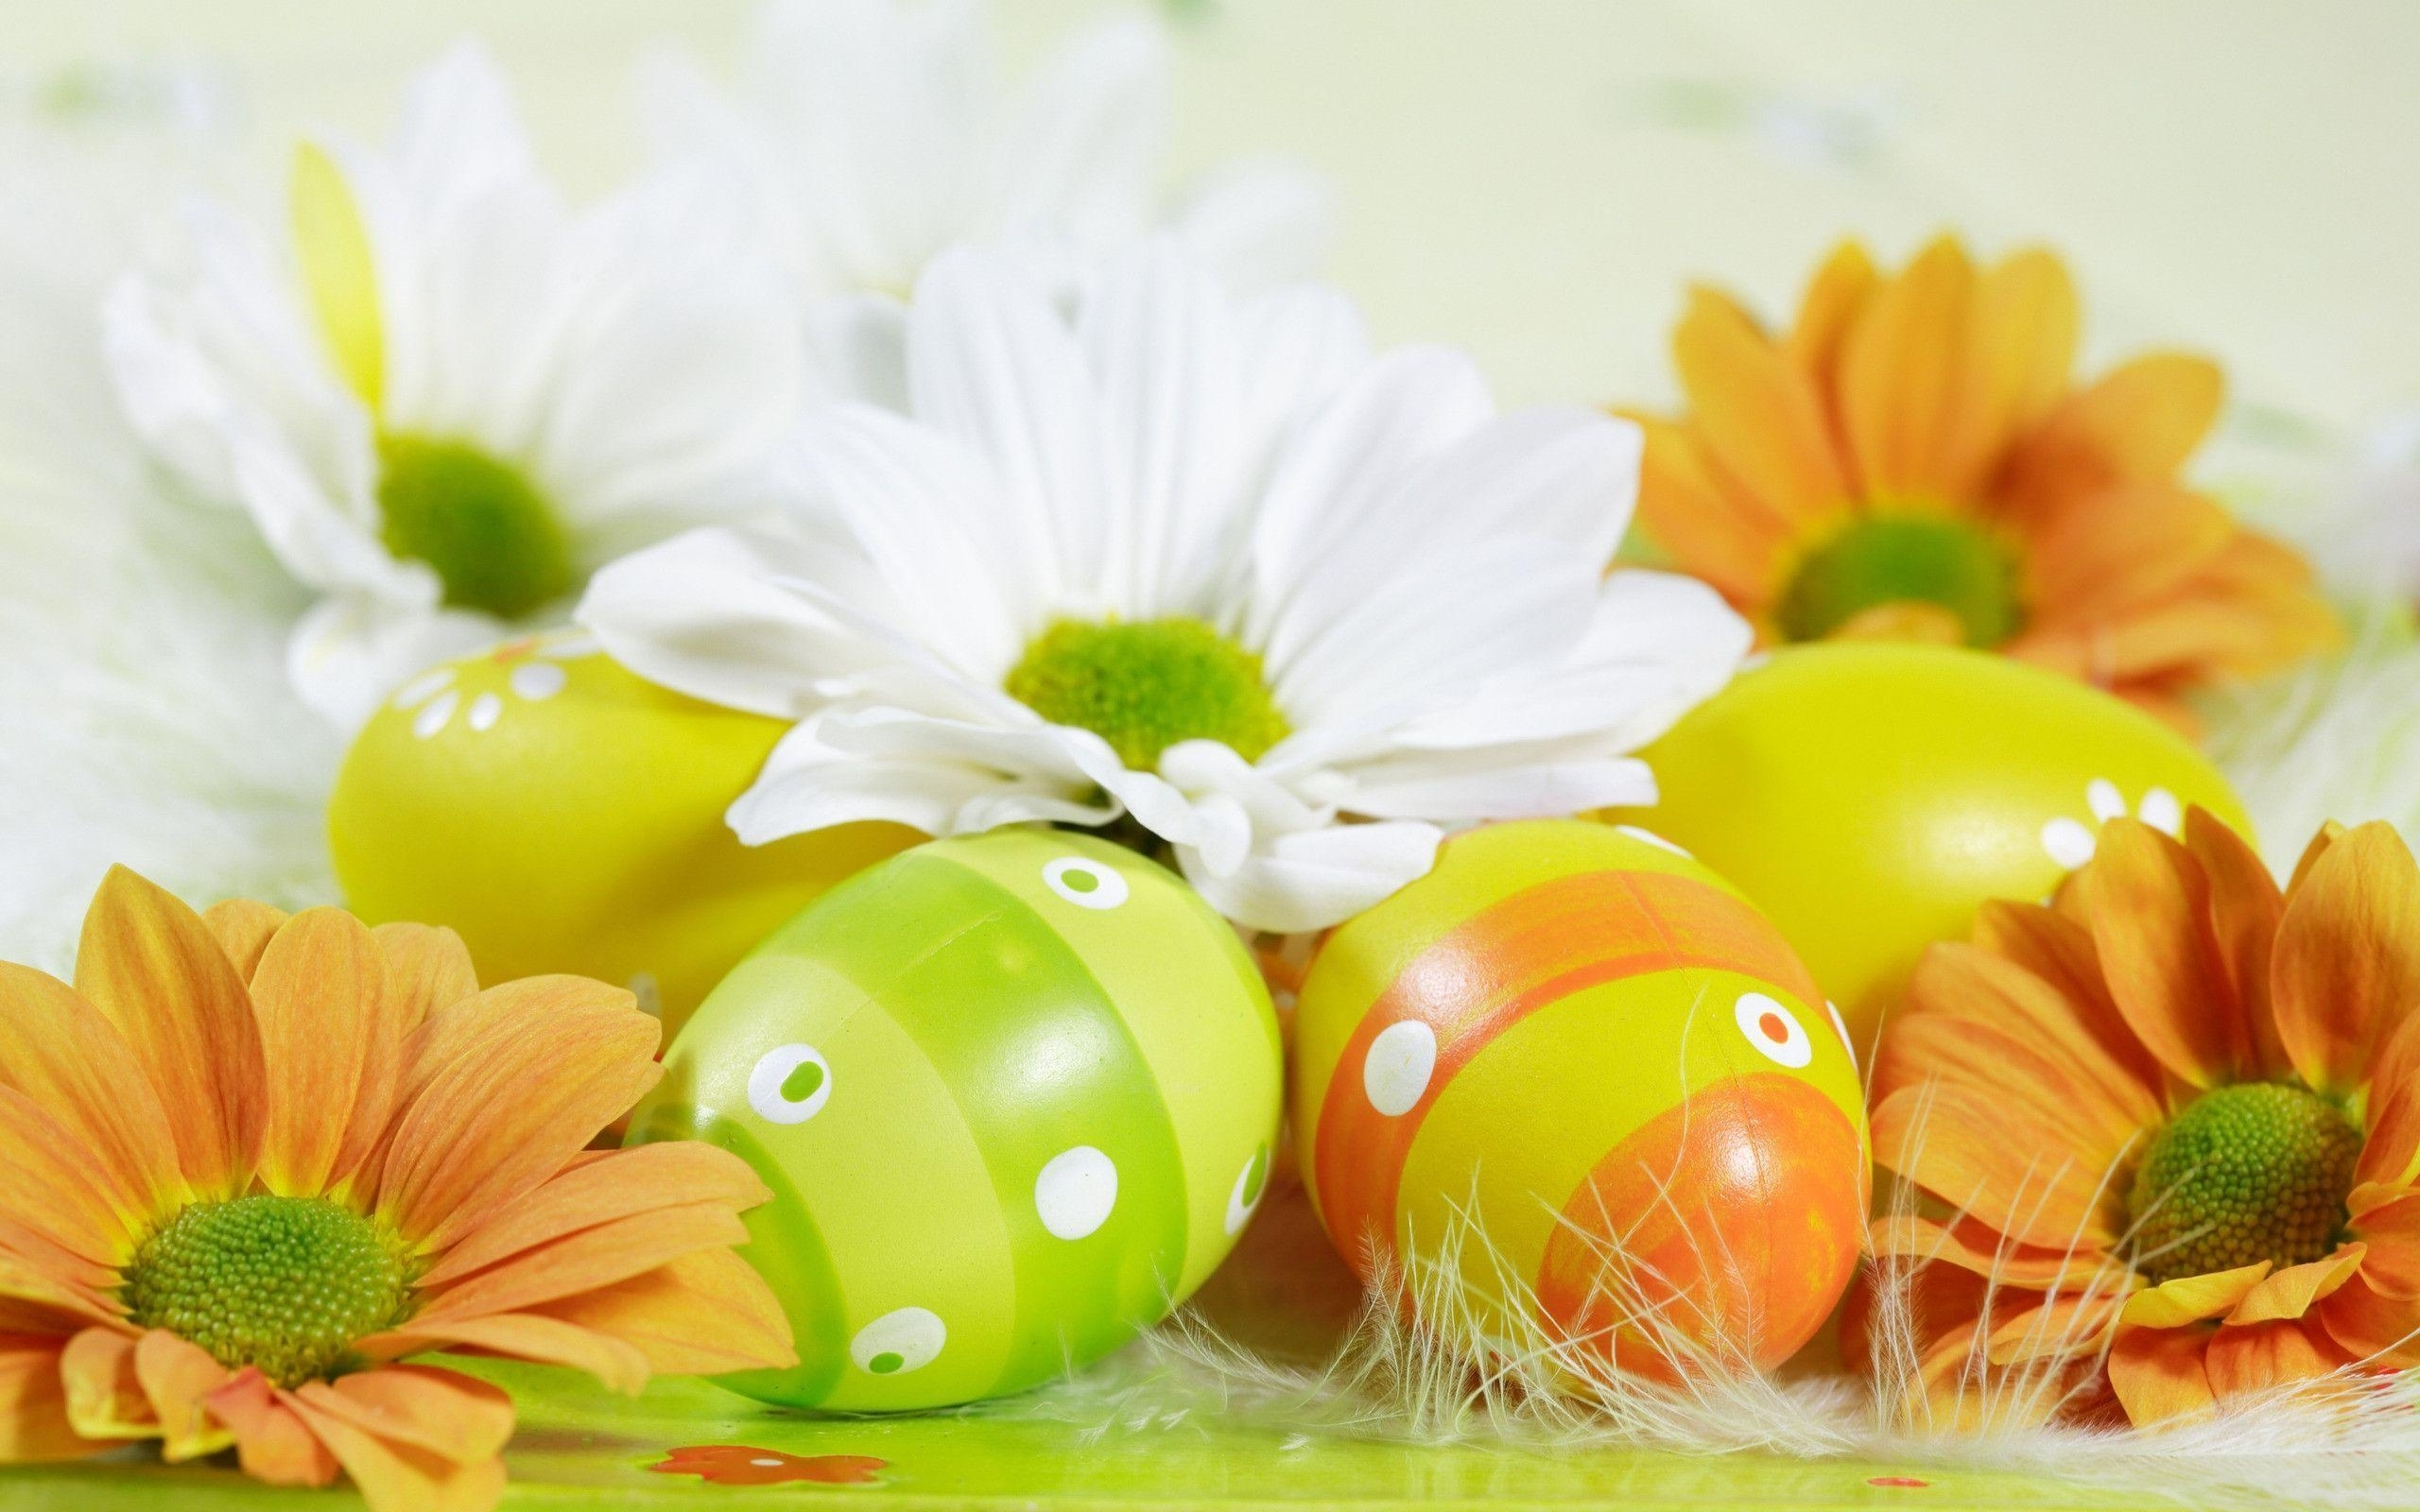 10 Best Easter Desktop Backgrounds Free FULL HD 1080p For PC Background